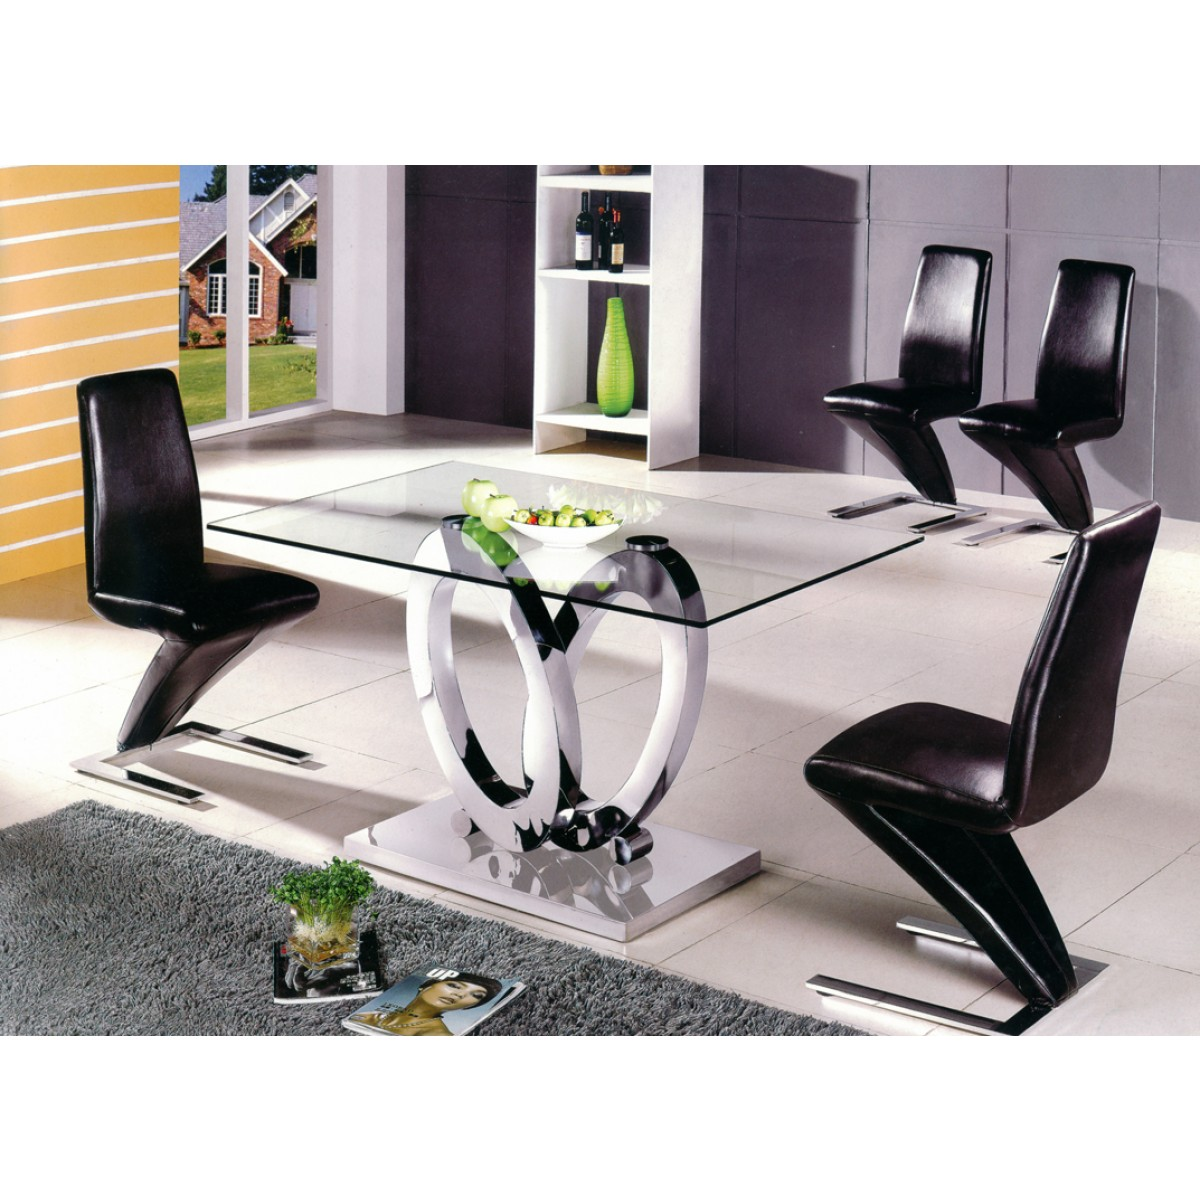 Table manger design ellipse taille au choix tables for Table de salle a manger knok